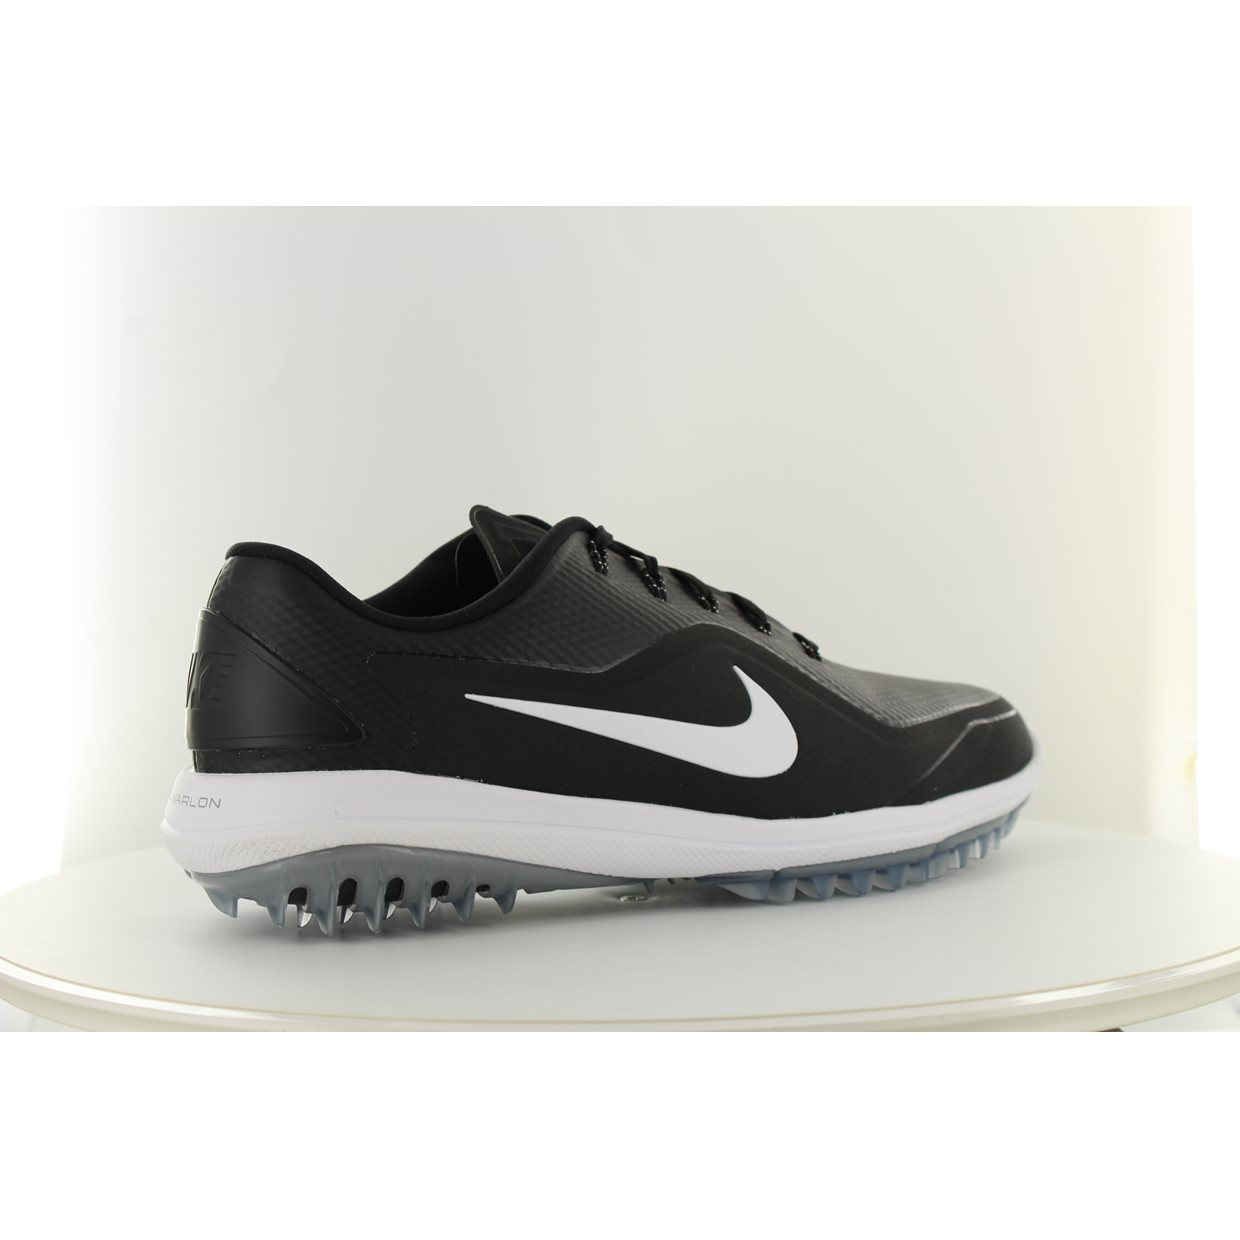 best service c413f ea253 Nike Lunar Control Vapor 2 Spikeless Shoes at GlobalGolf.com